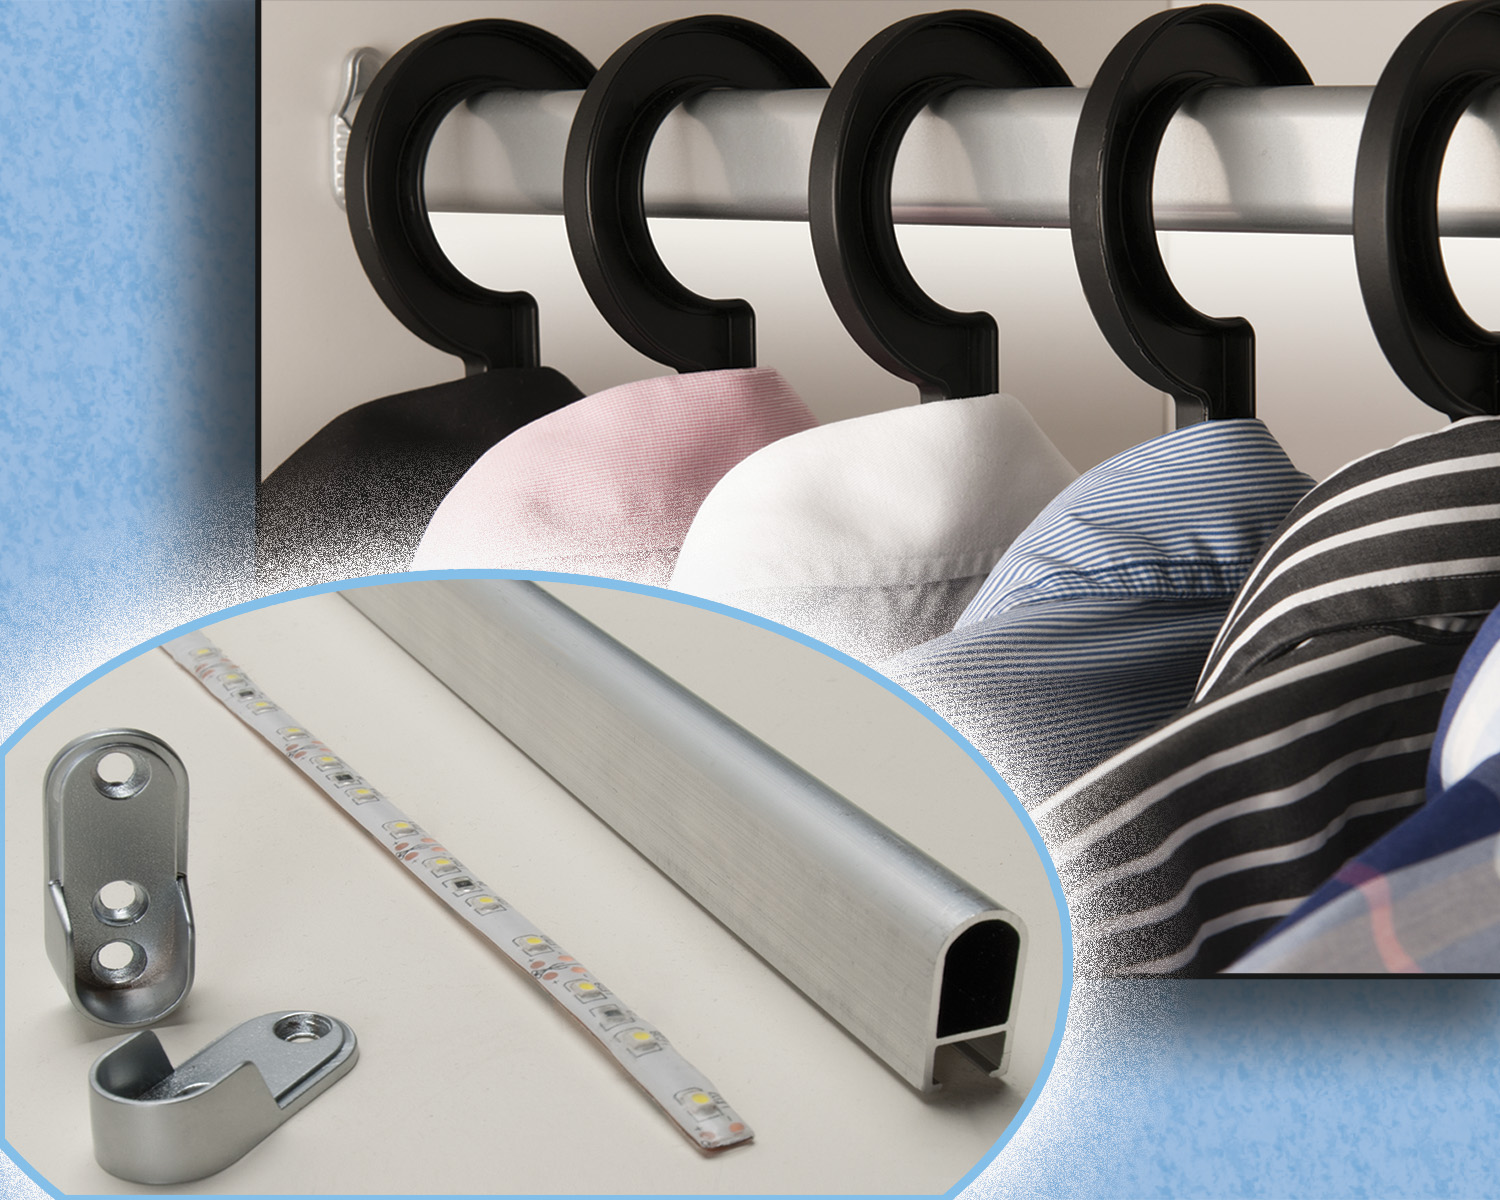 Led Home Lighting Business Outwater Introduces Its Led Closet Rod Light Kit